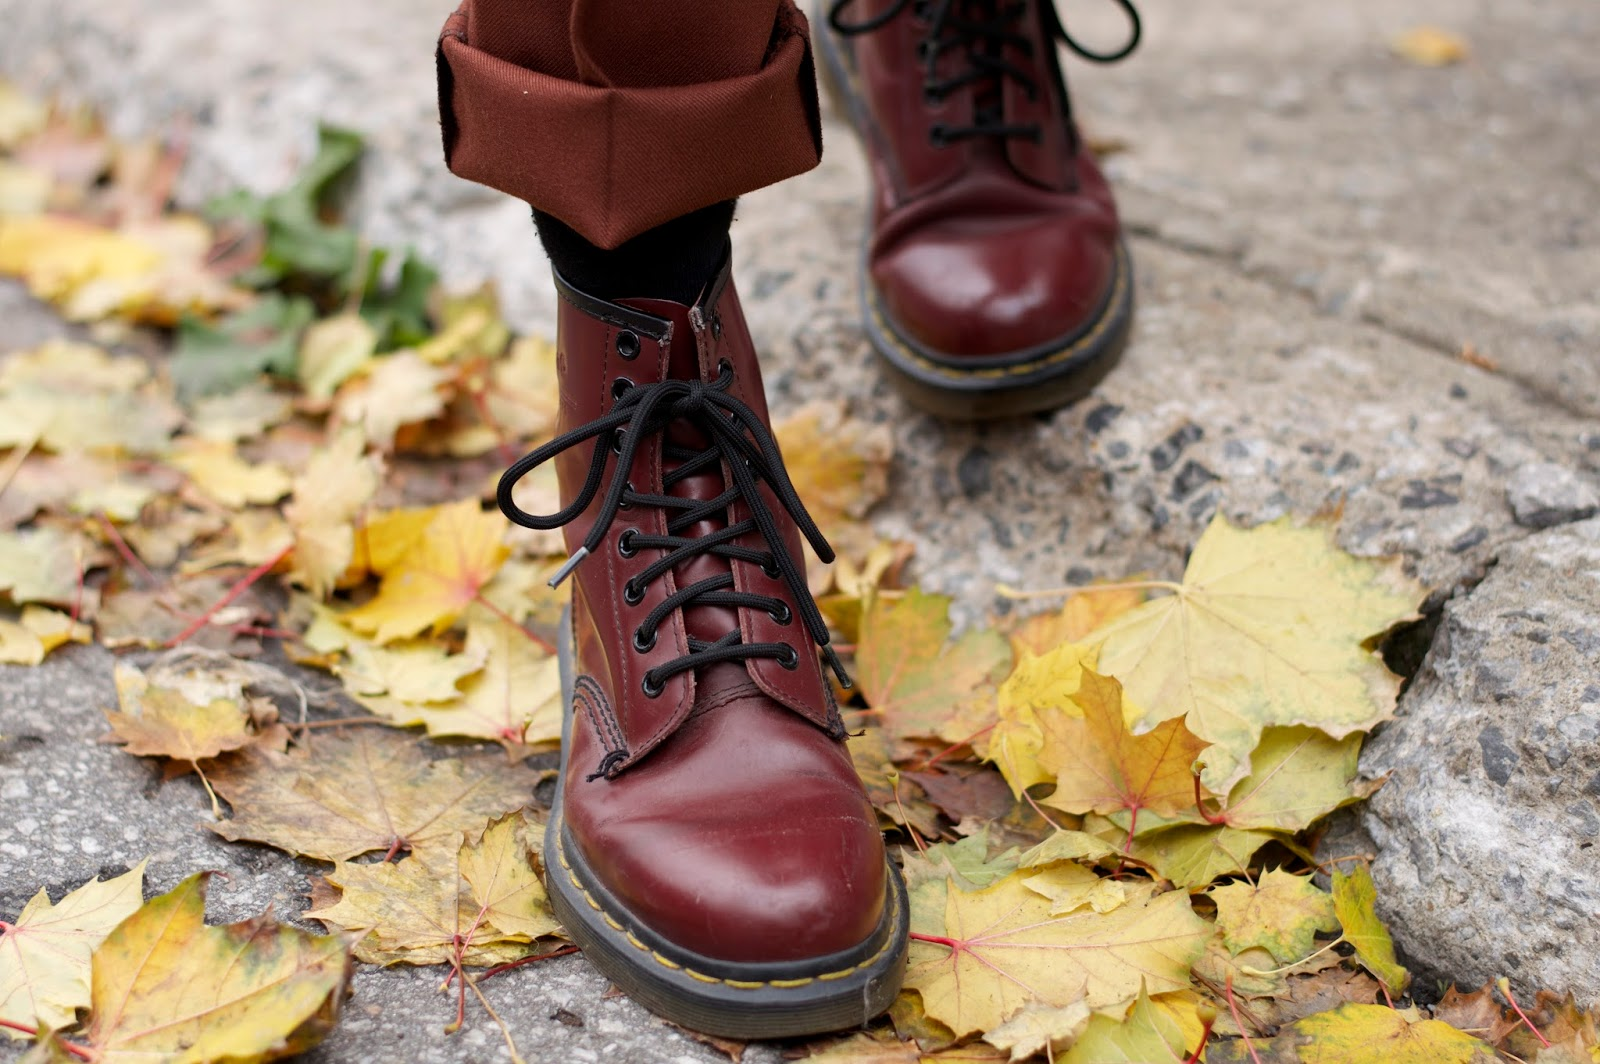 Cherry red Dr Martens boots